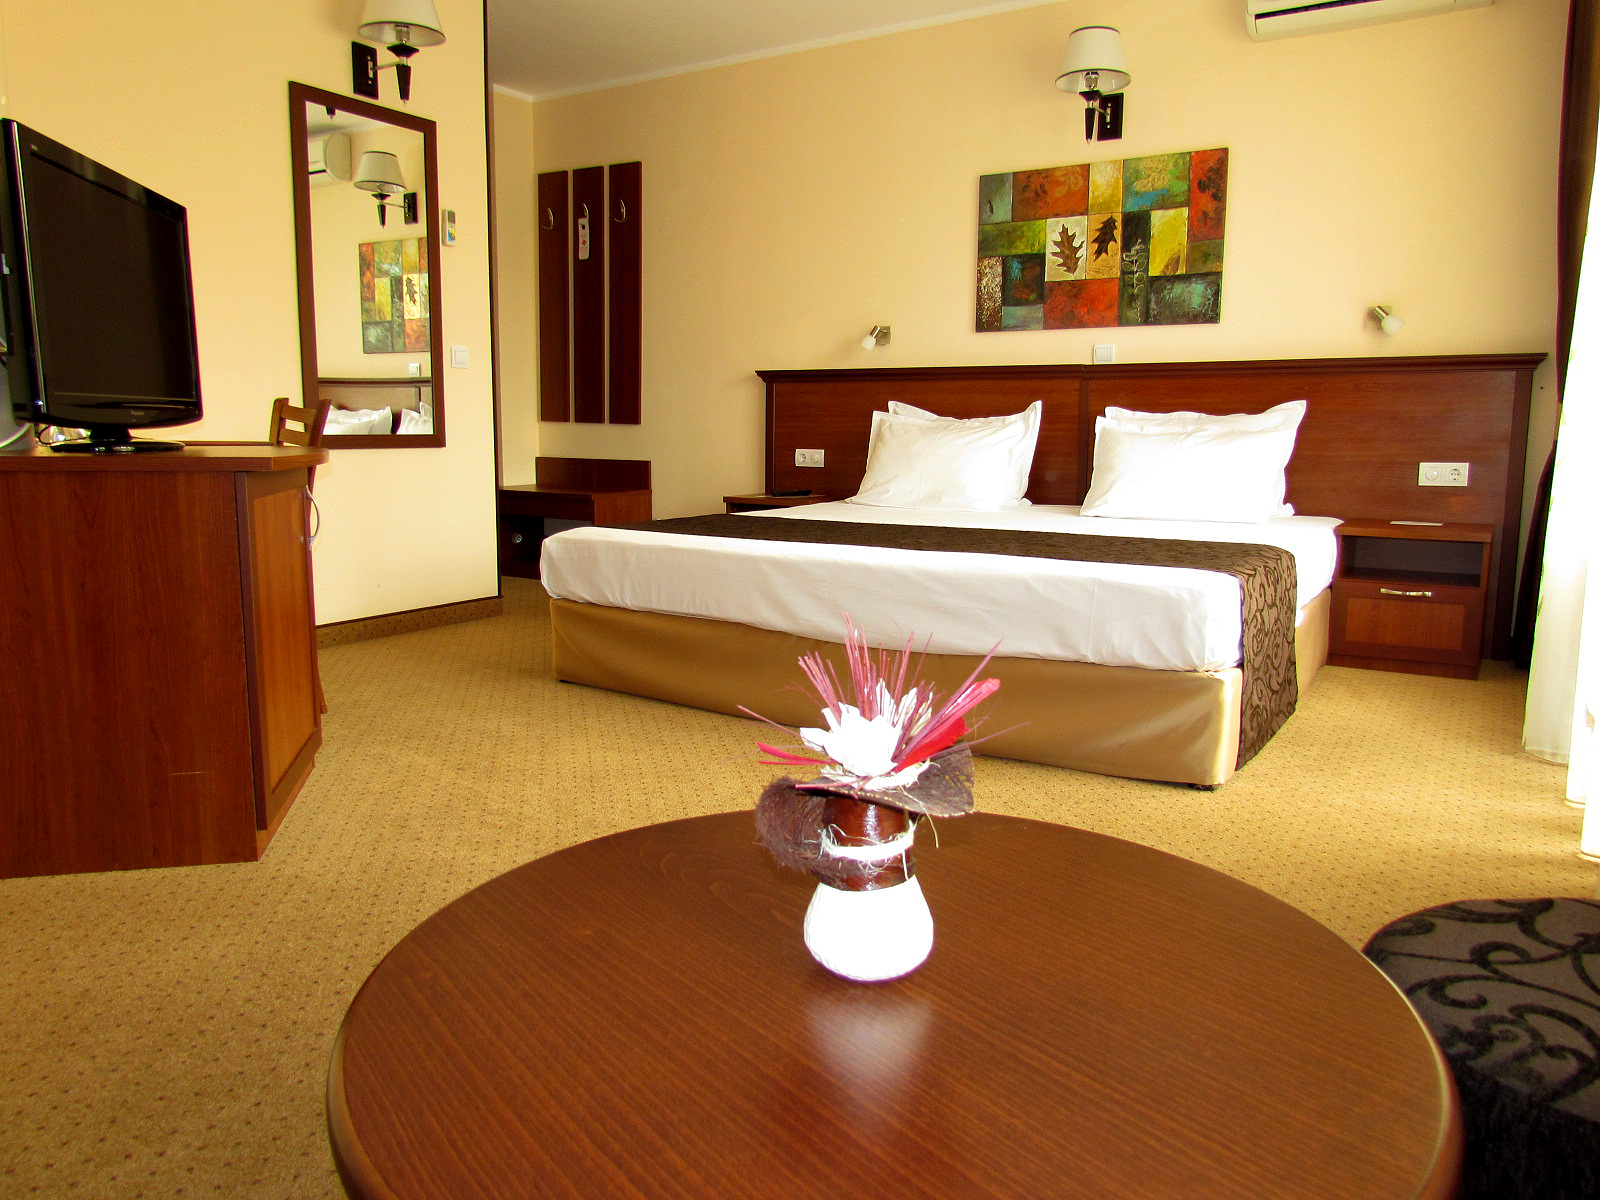 Rooms Favorit in Hotel Favorit Sofia